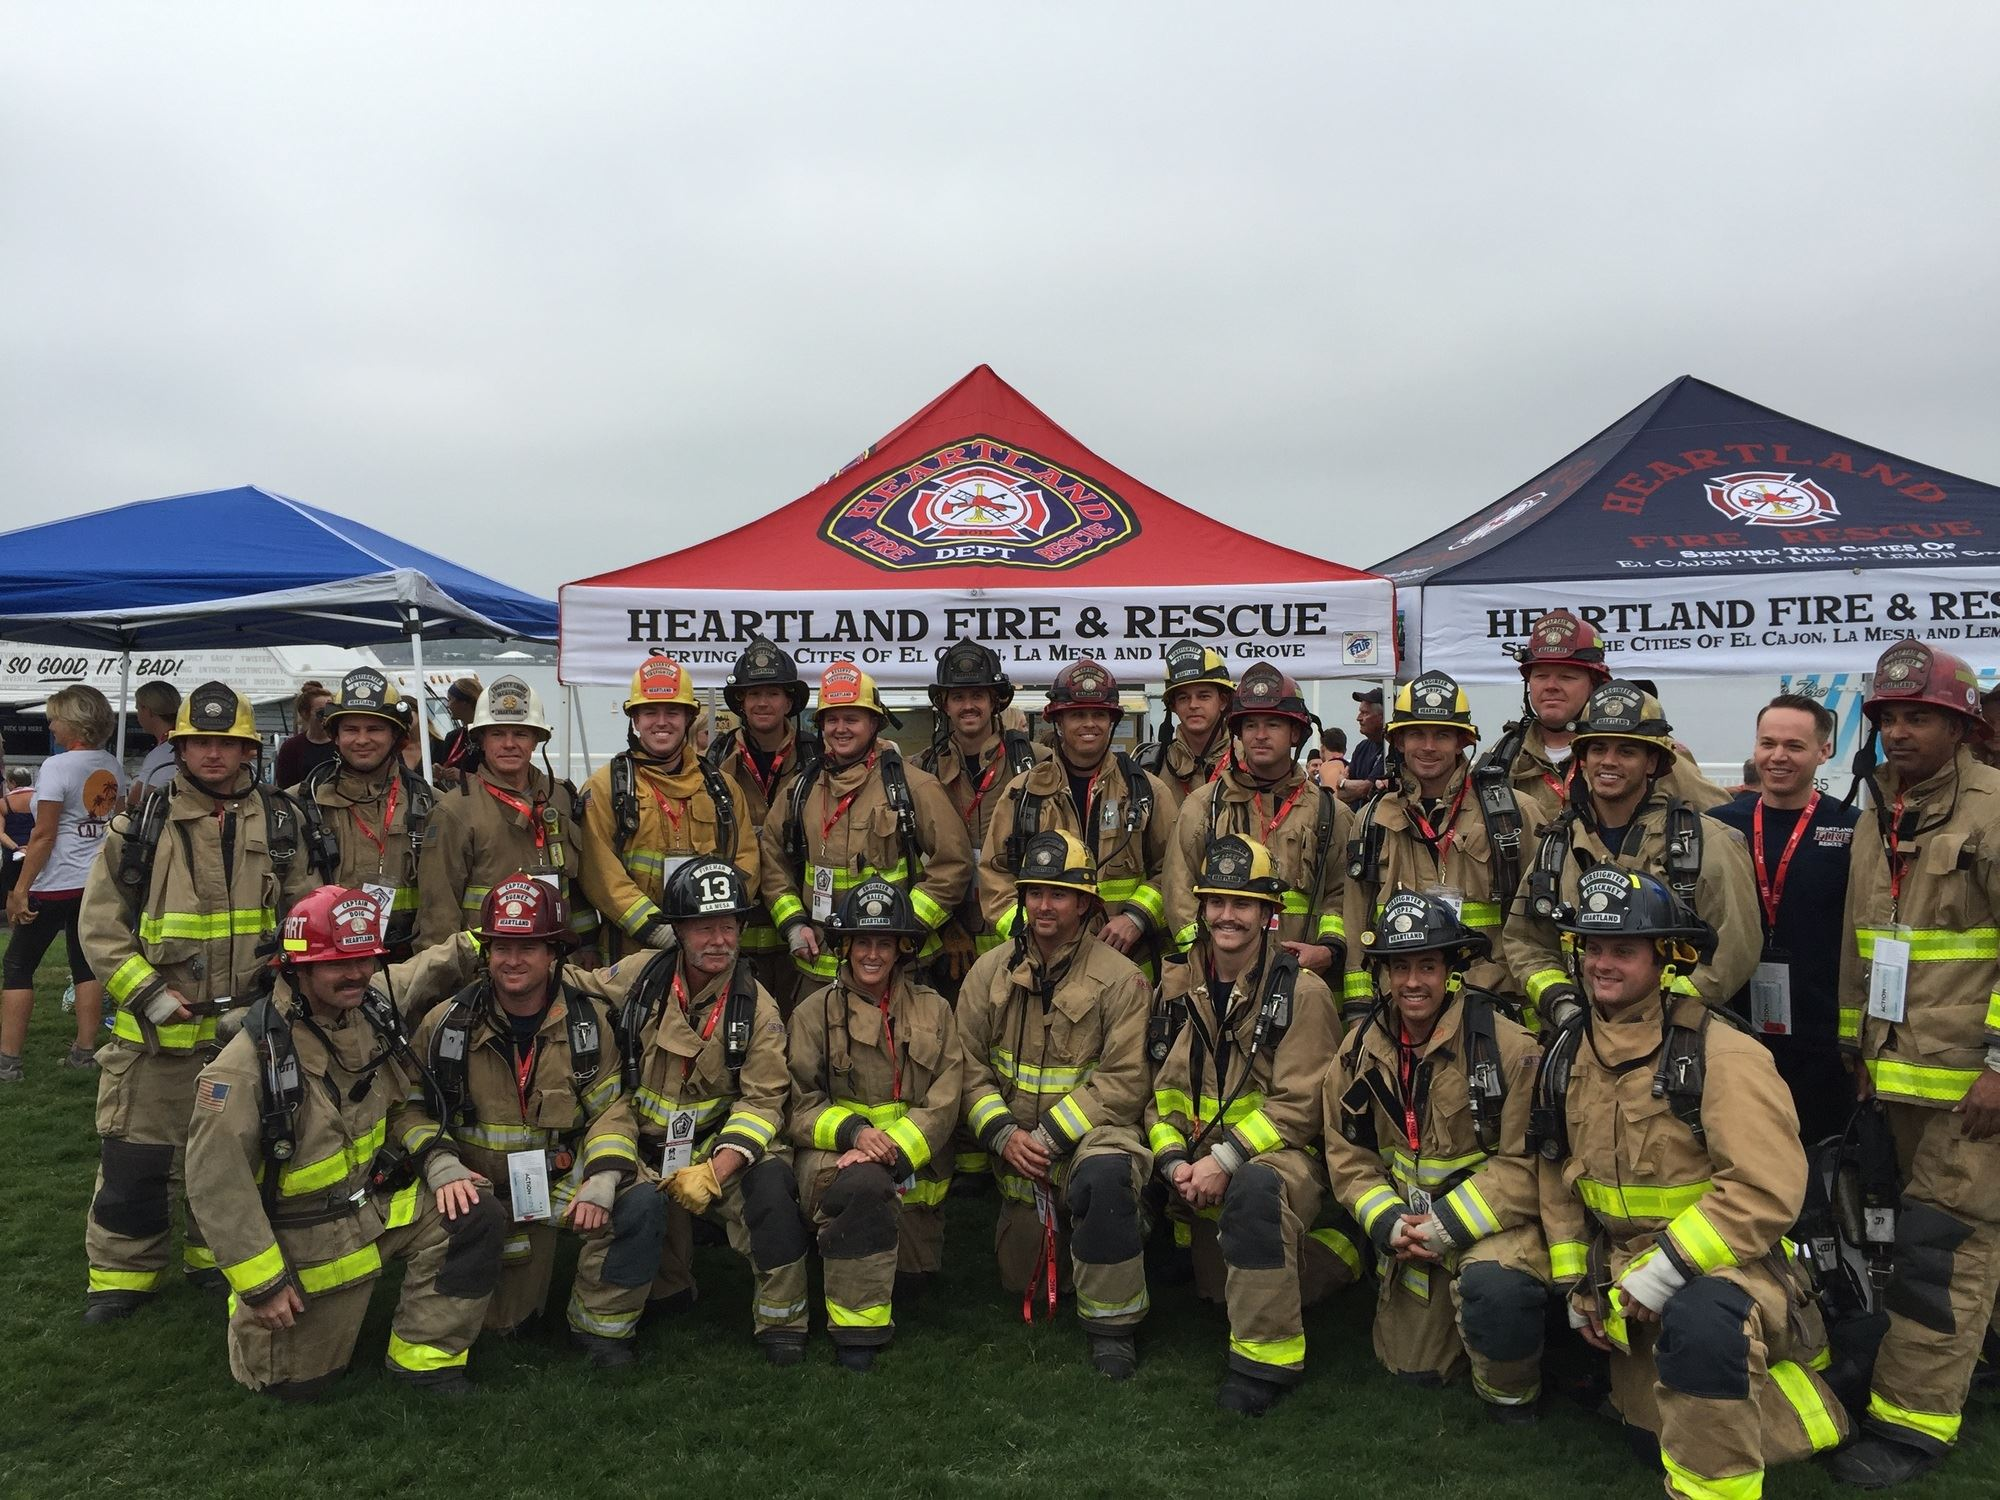 Heartland Fire and Rescue staff